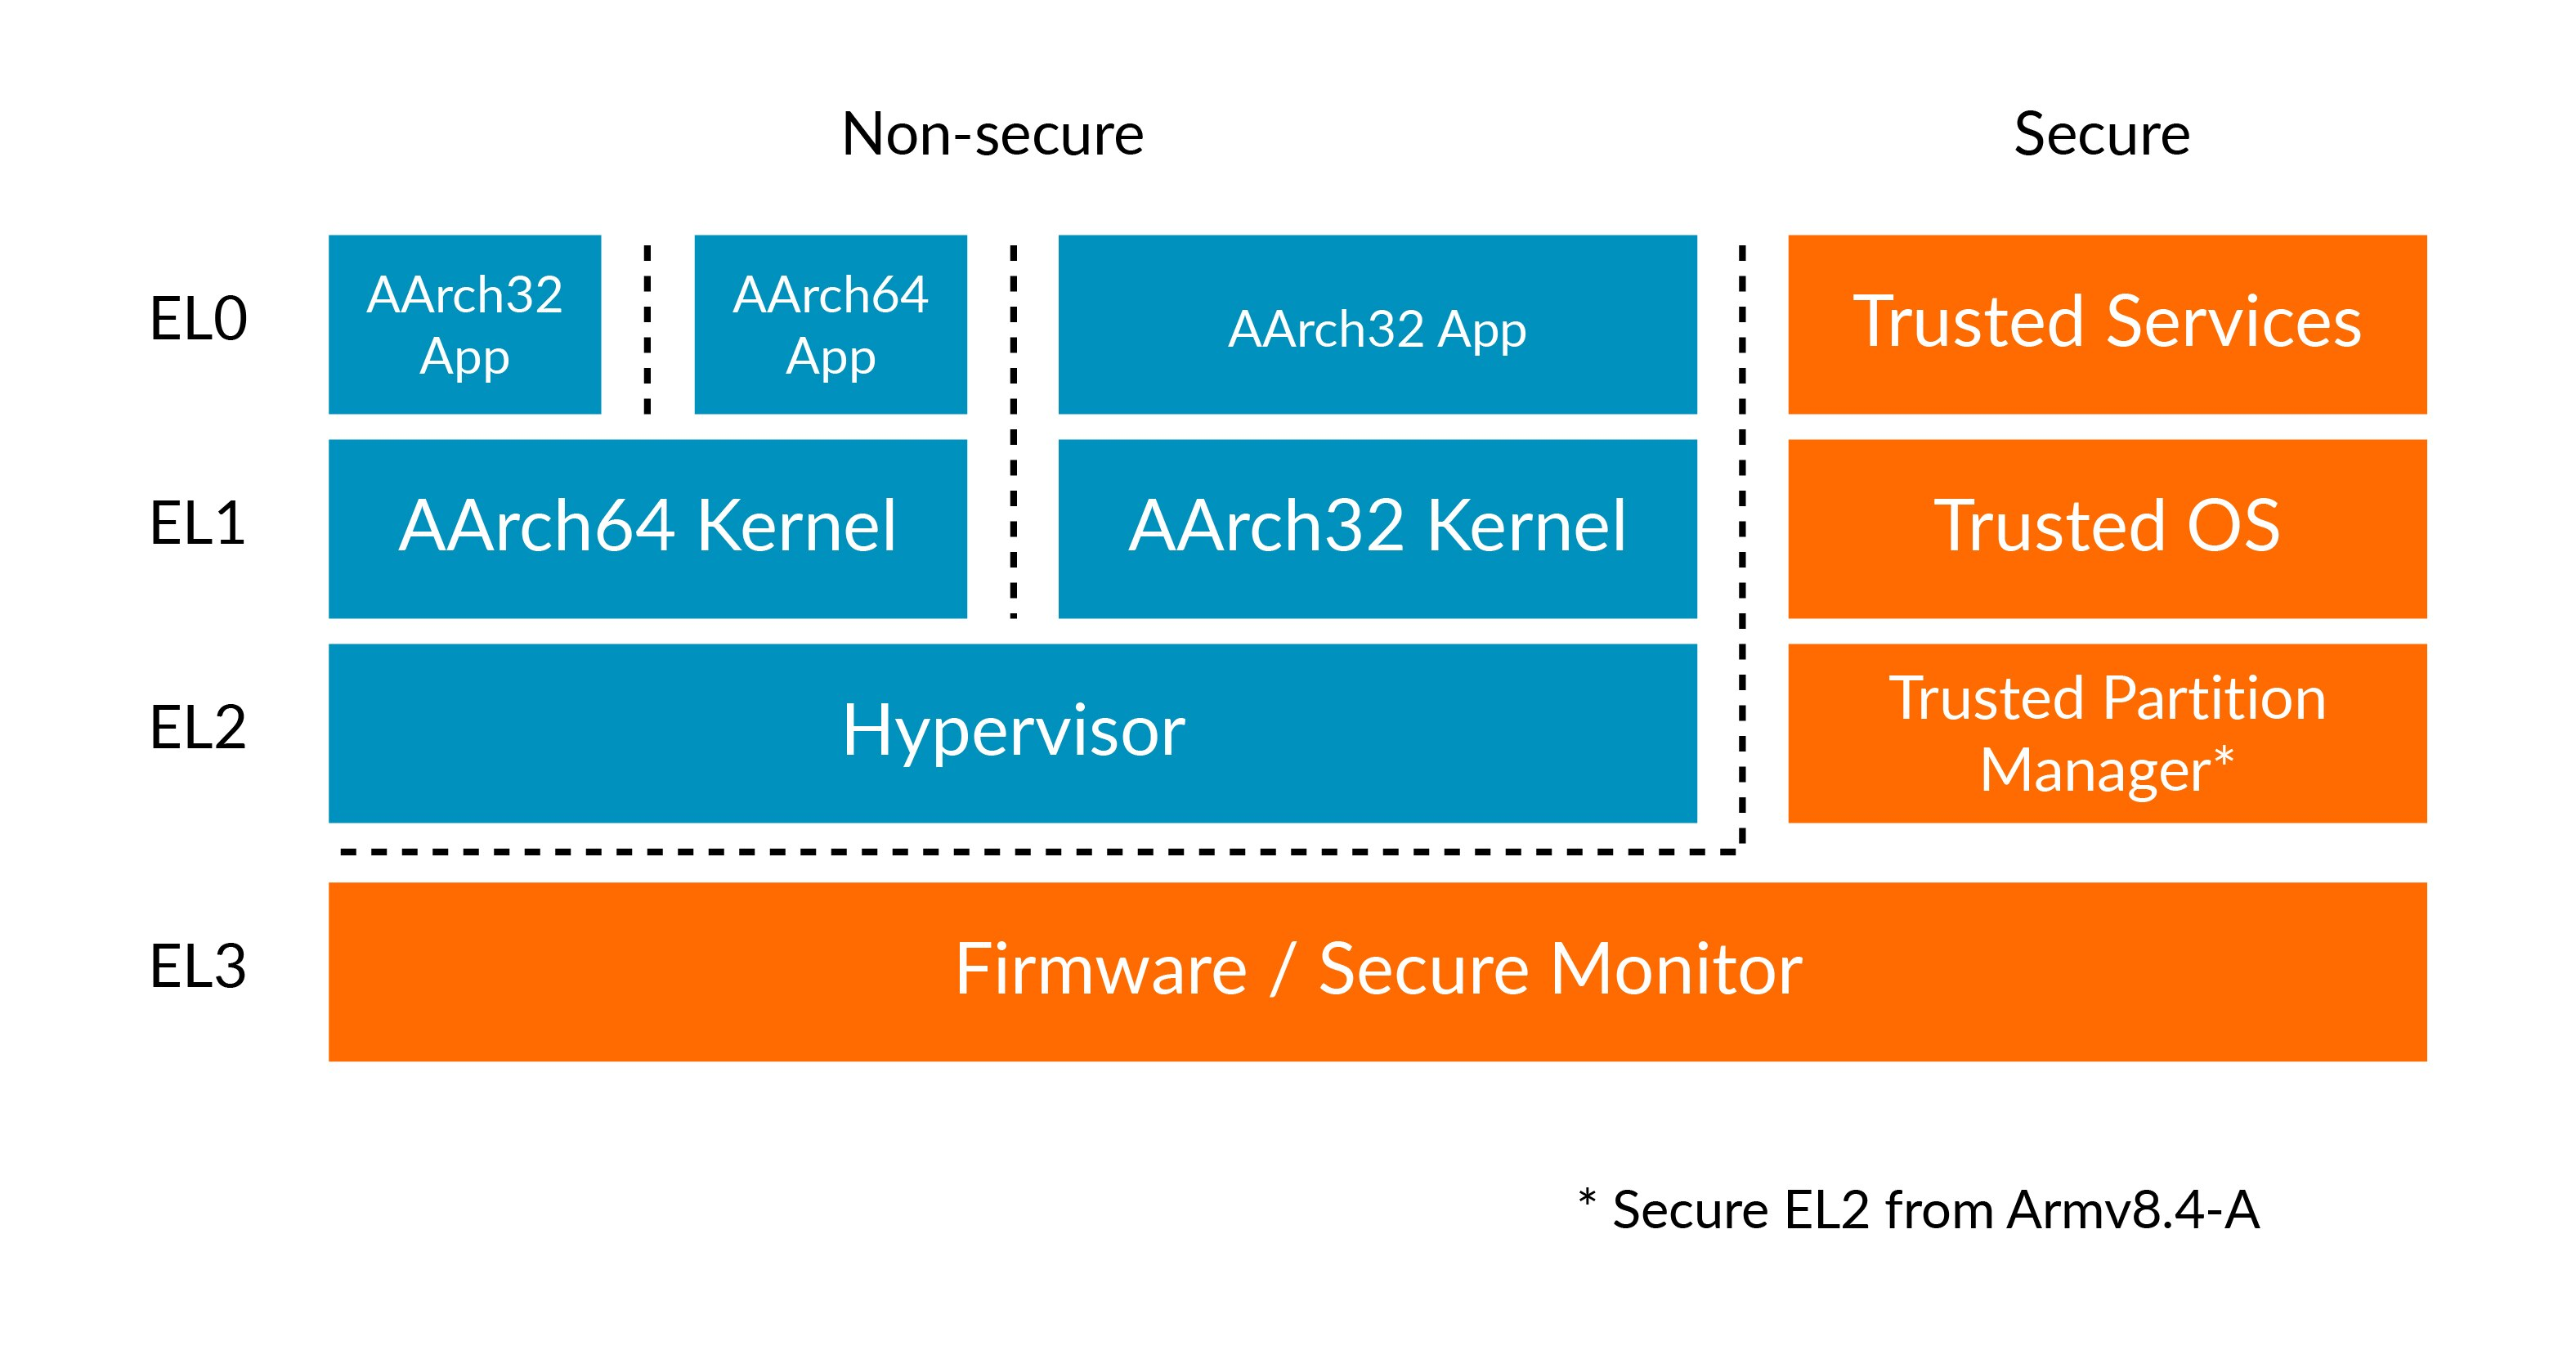 This diagram shows Exception levels and Security states in Armv8-A.